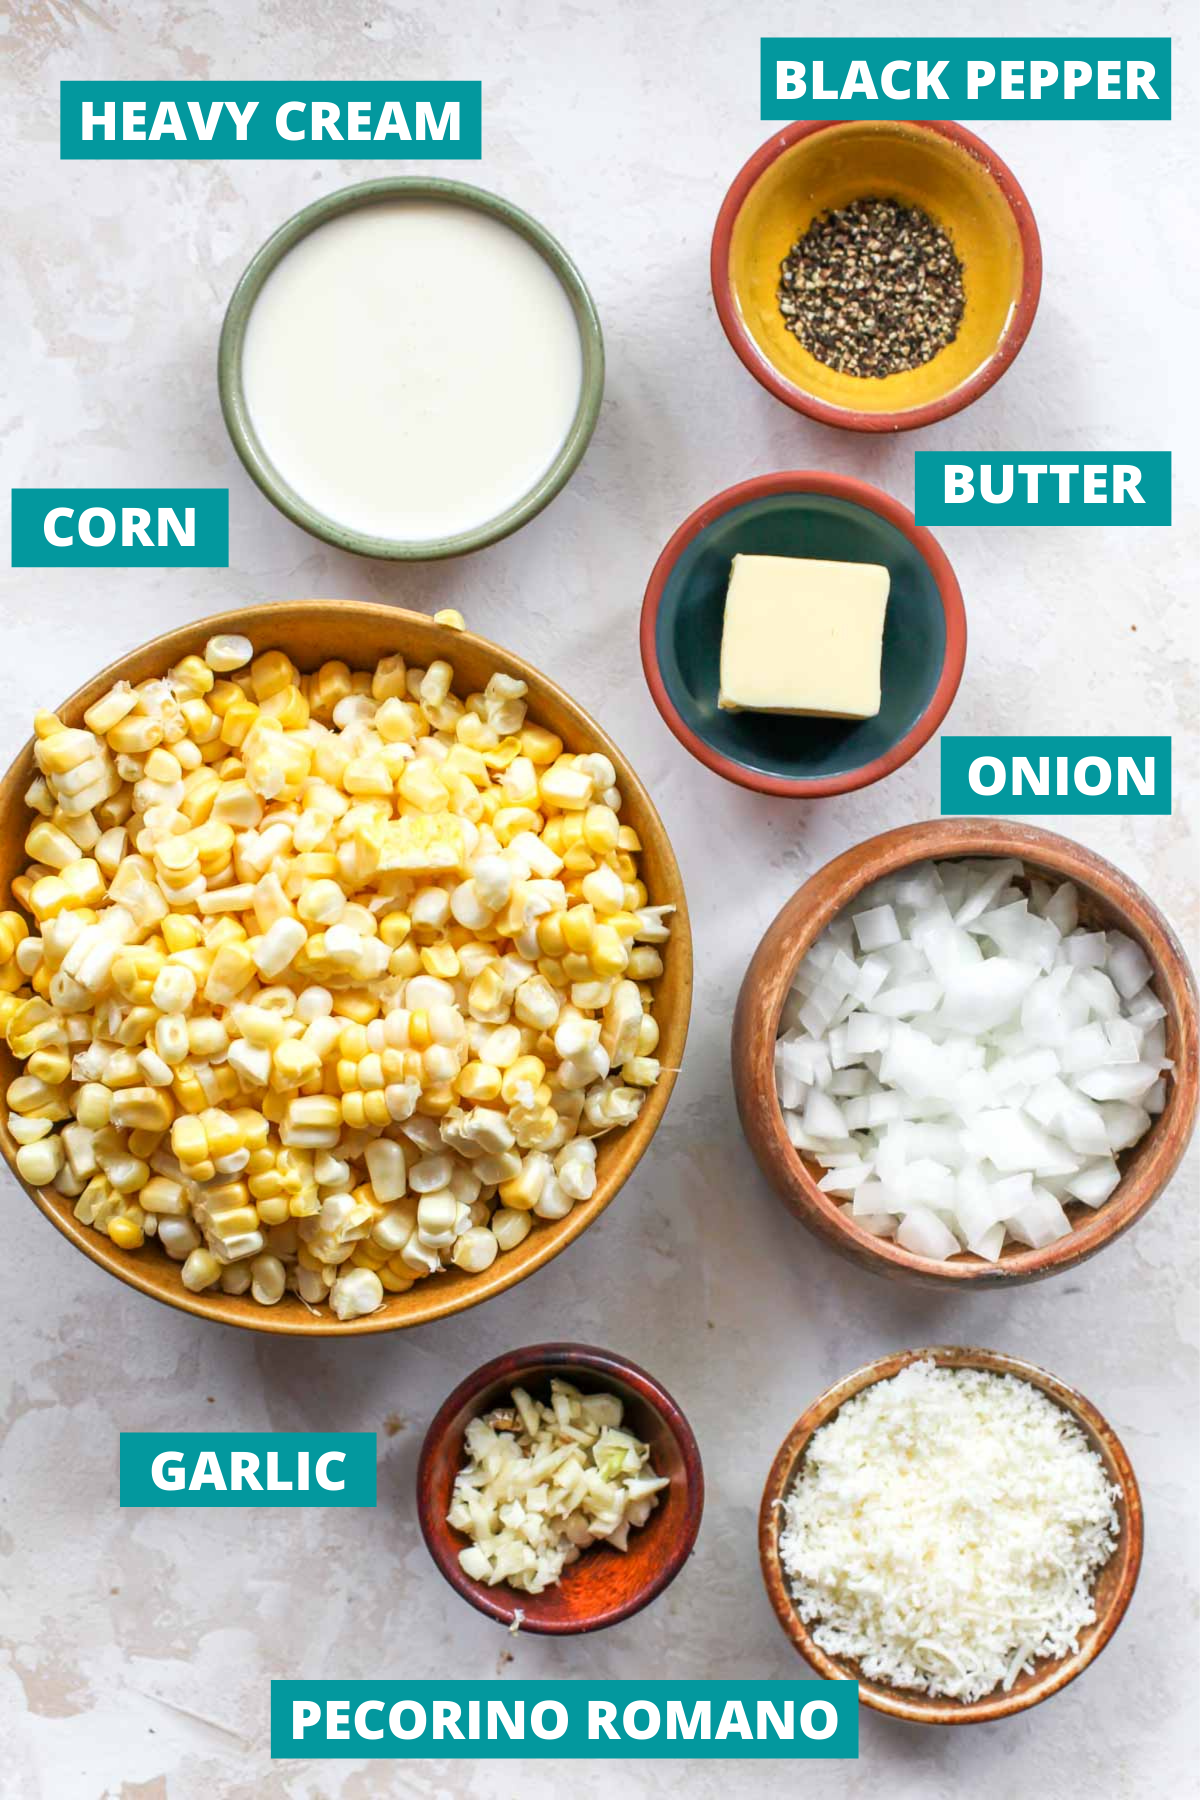 Corn, cheese, butter, and black pepper in separate bowls with blue ingredient label tags